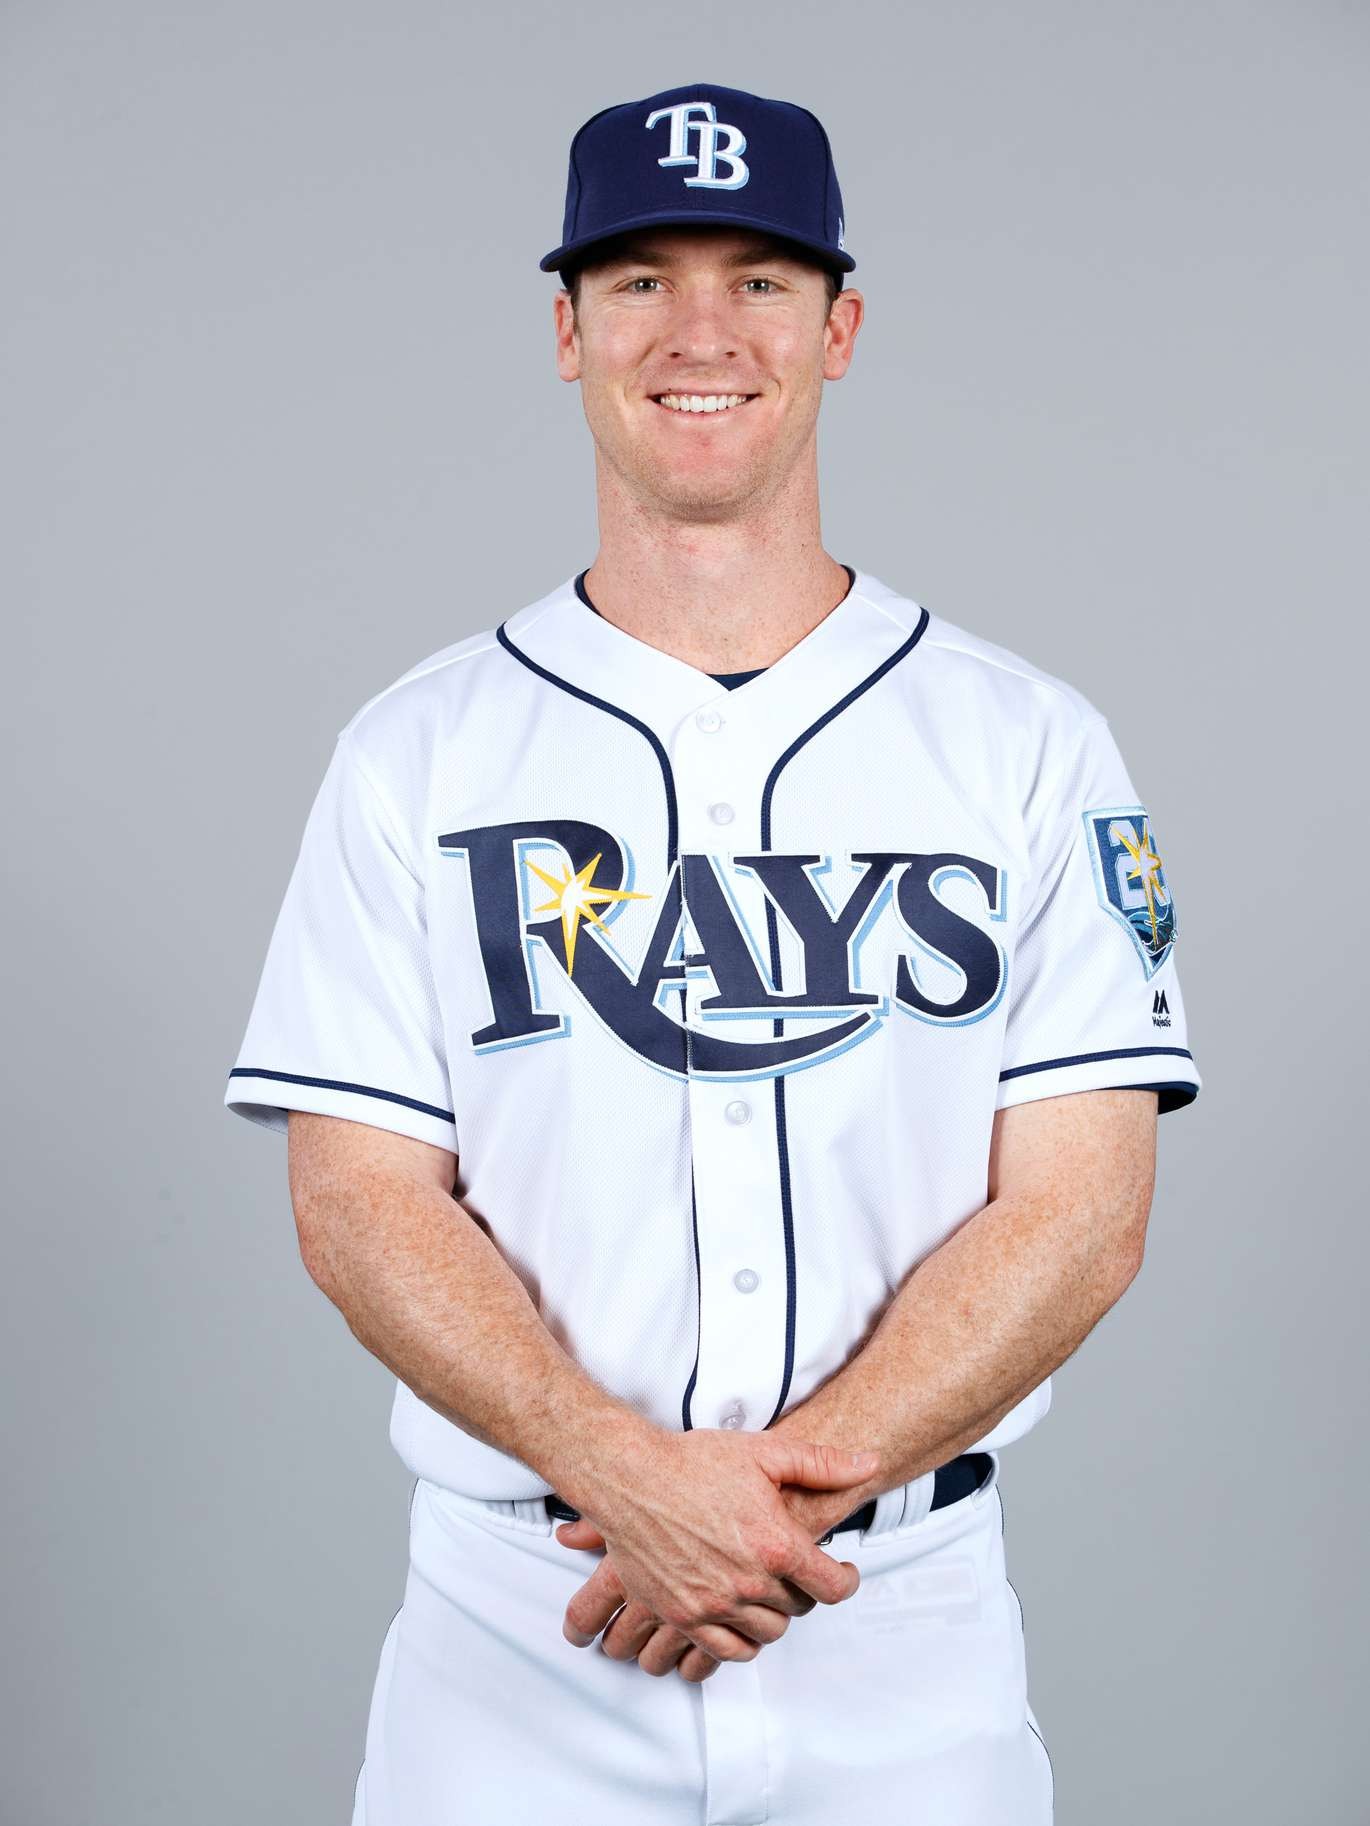 18. Joey Wendle, inf, No. 18: Will start more at second then righty-swinging Robertson, but bat is key to staying around since defense is considered quite good.